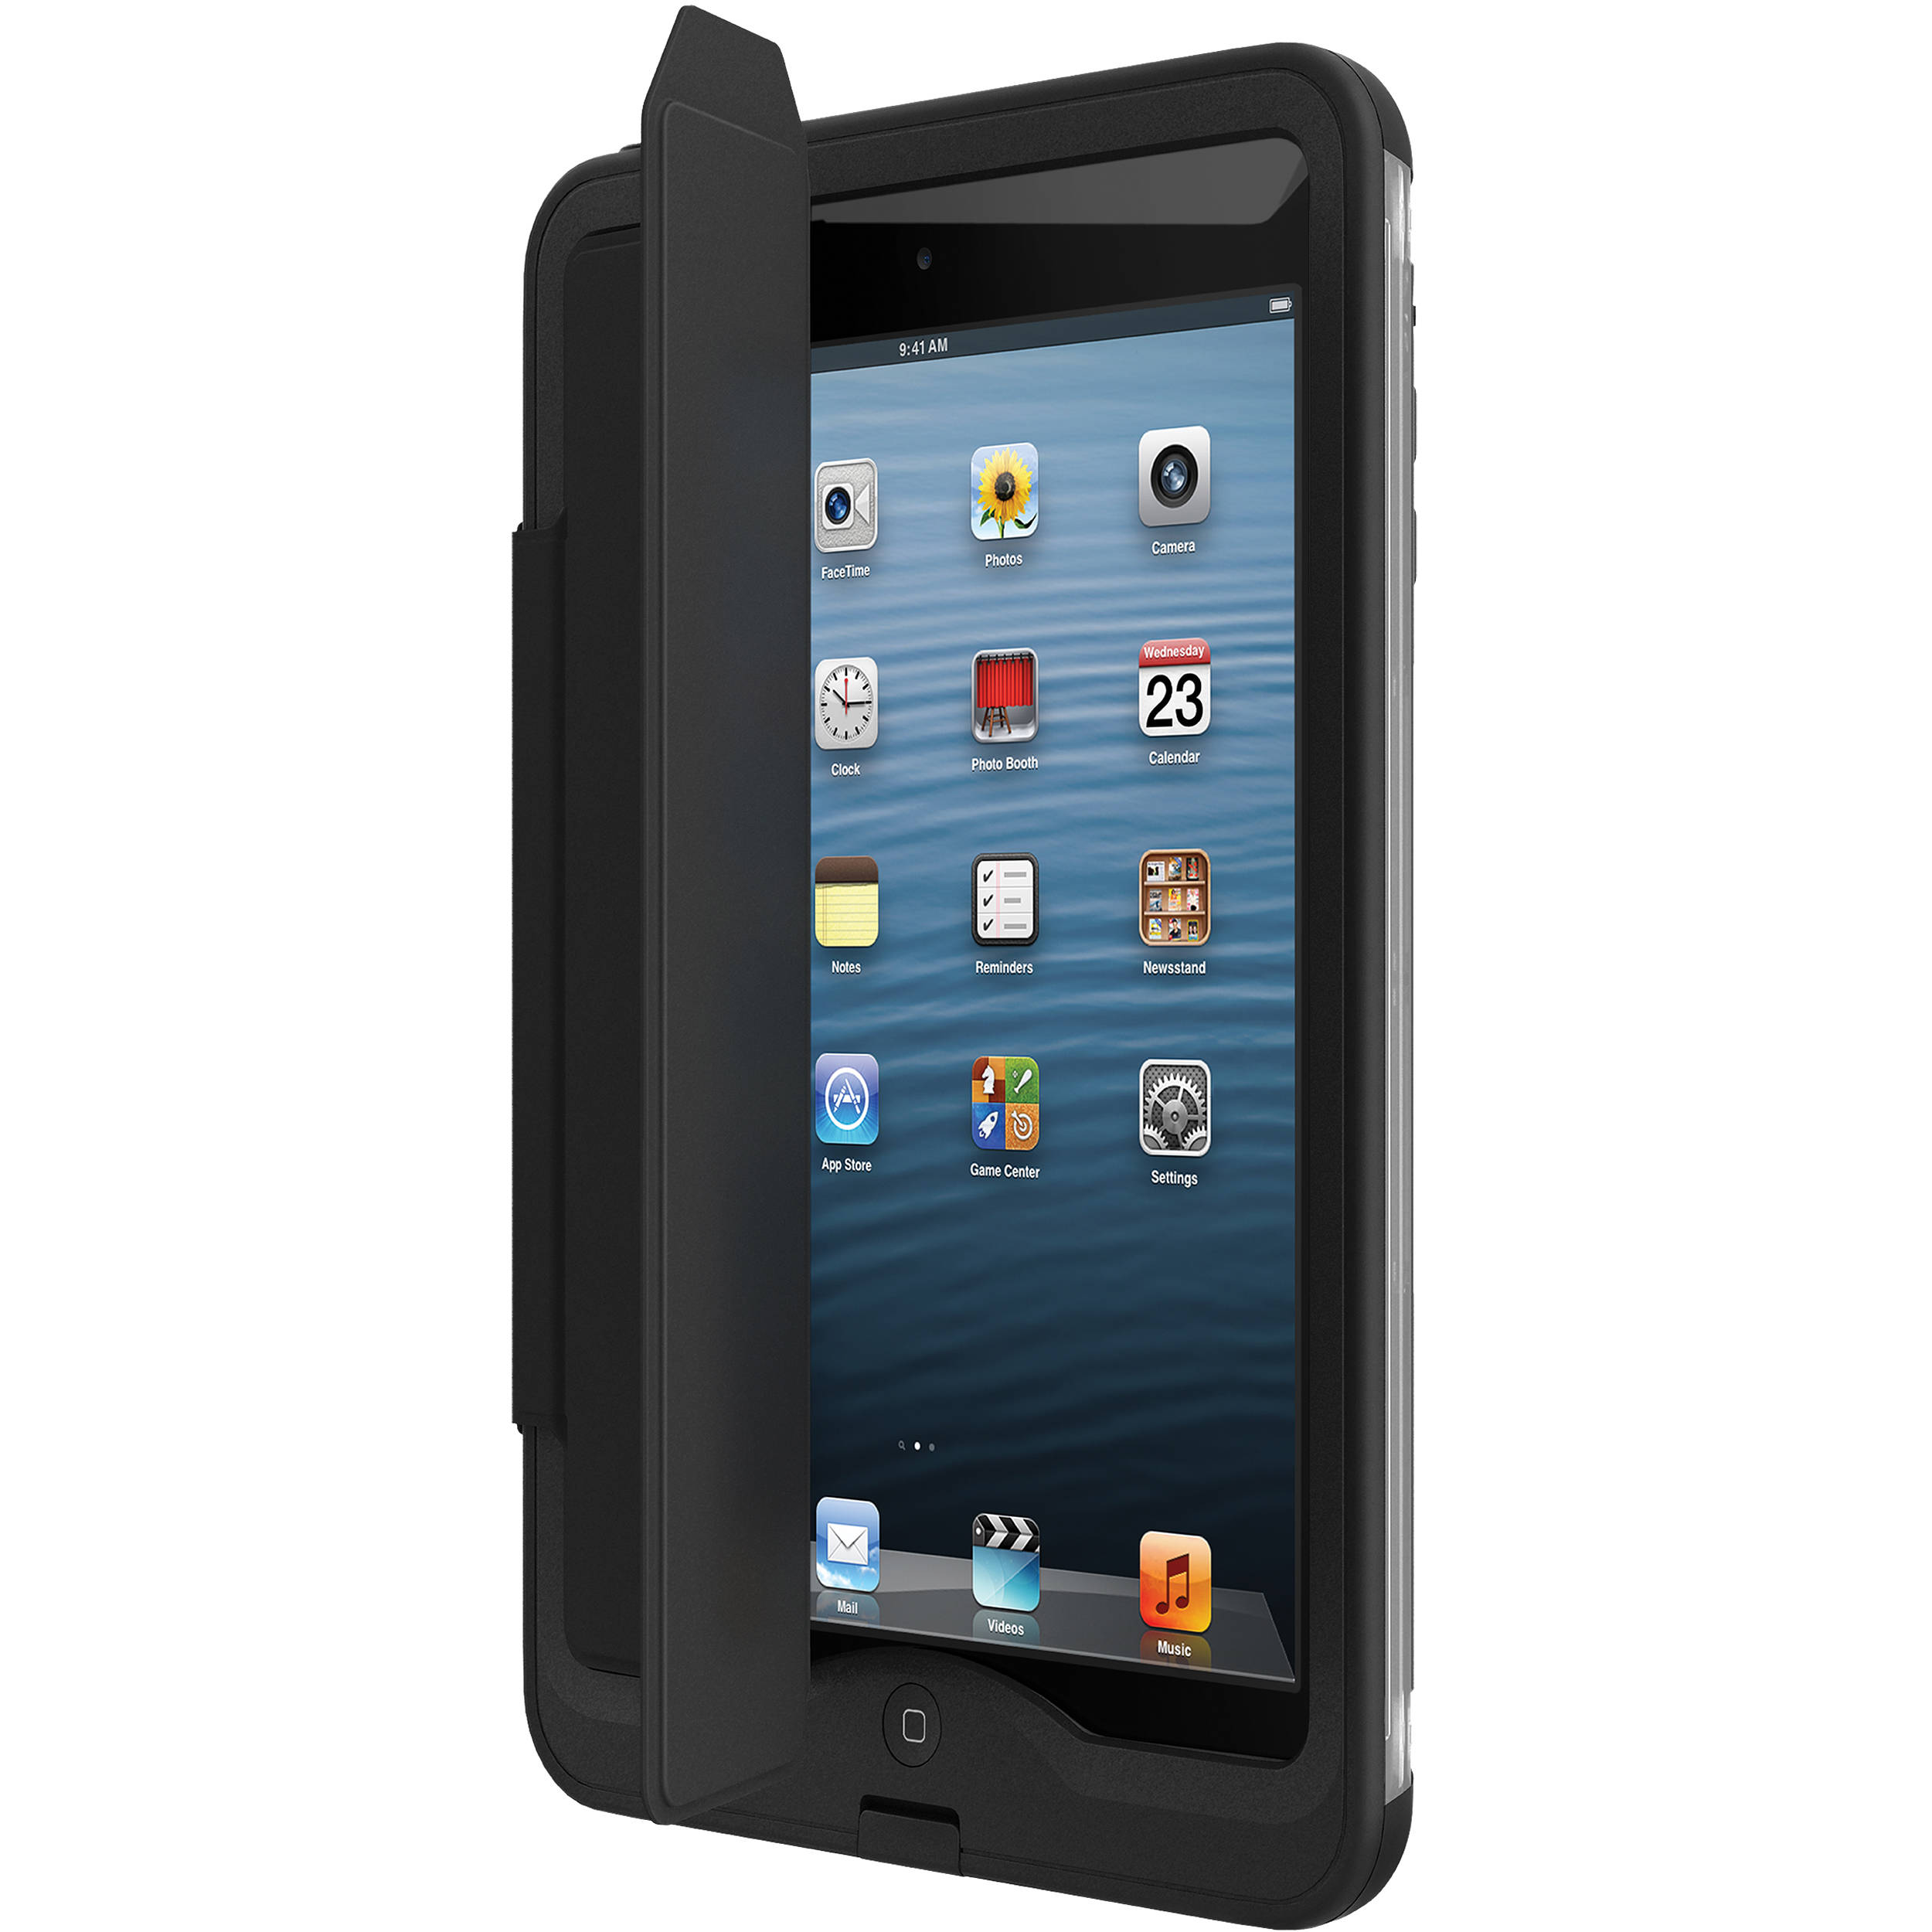 outlet store 9acdf 2c23a LifeProof Cover + Stand for iPad Air Case (Black/Gray)